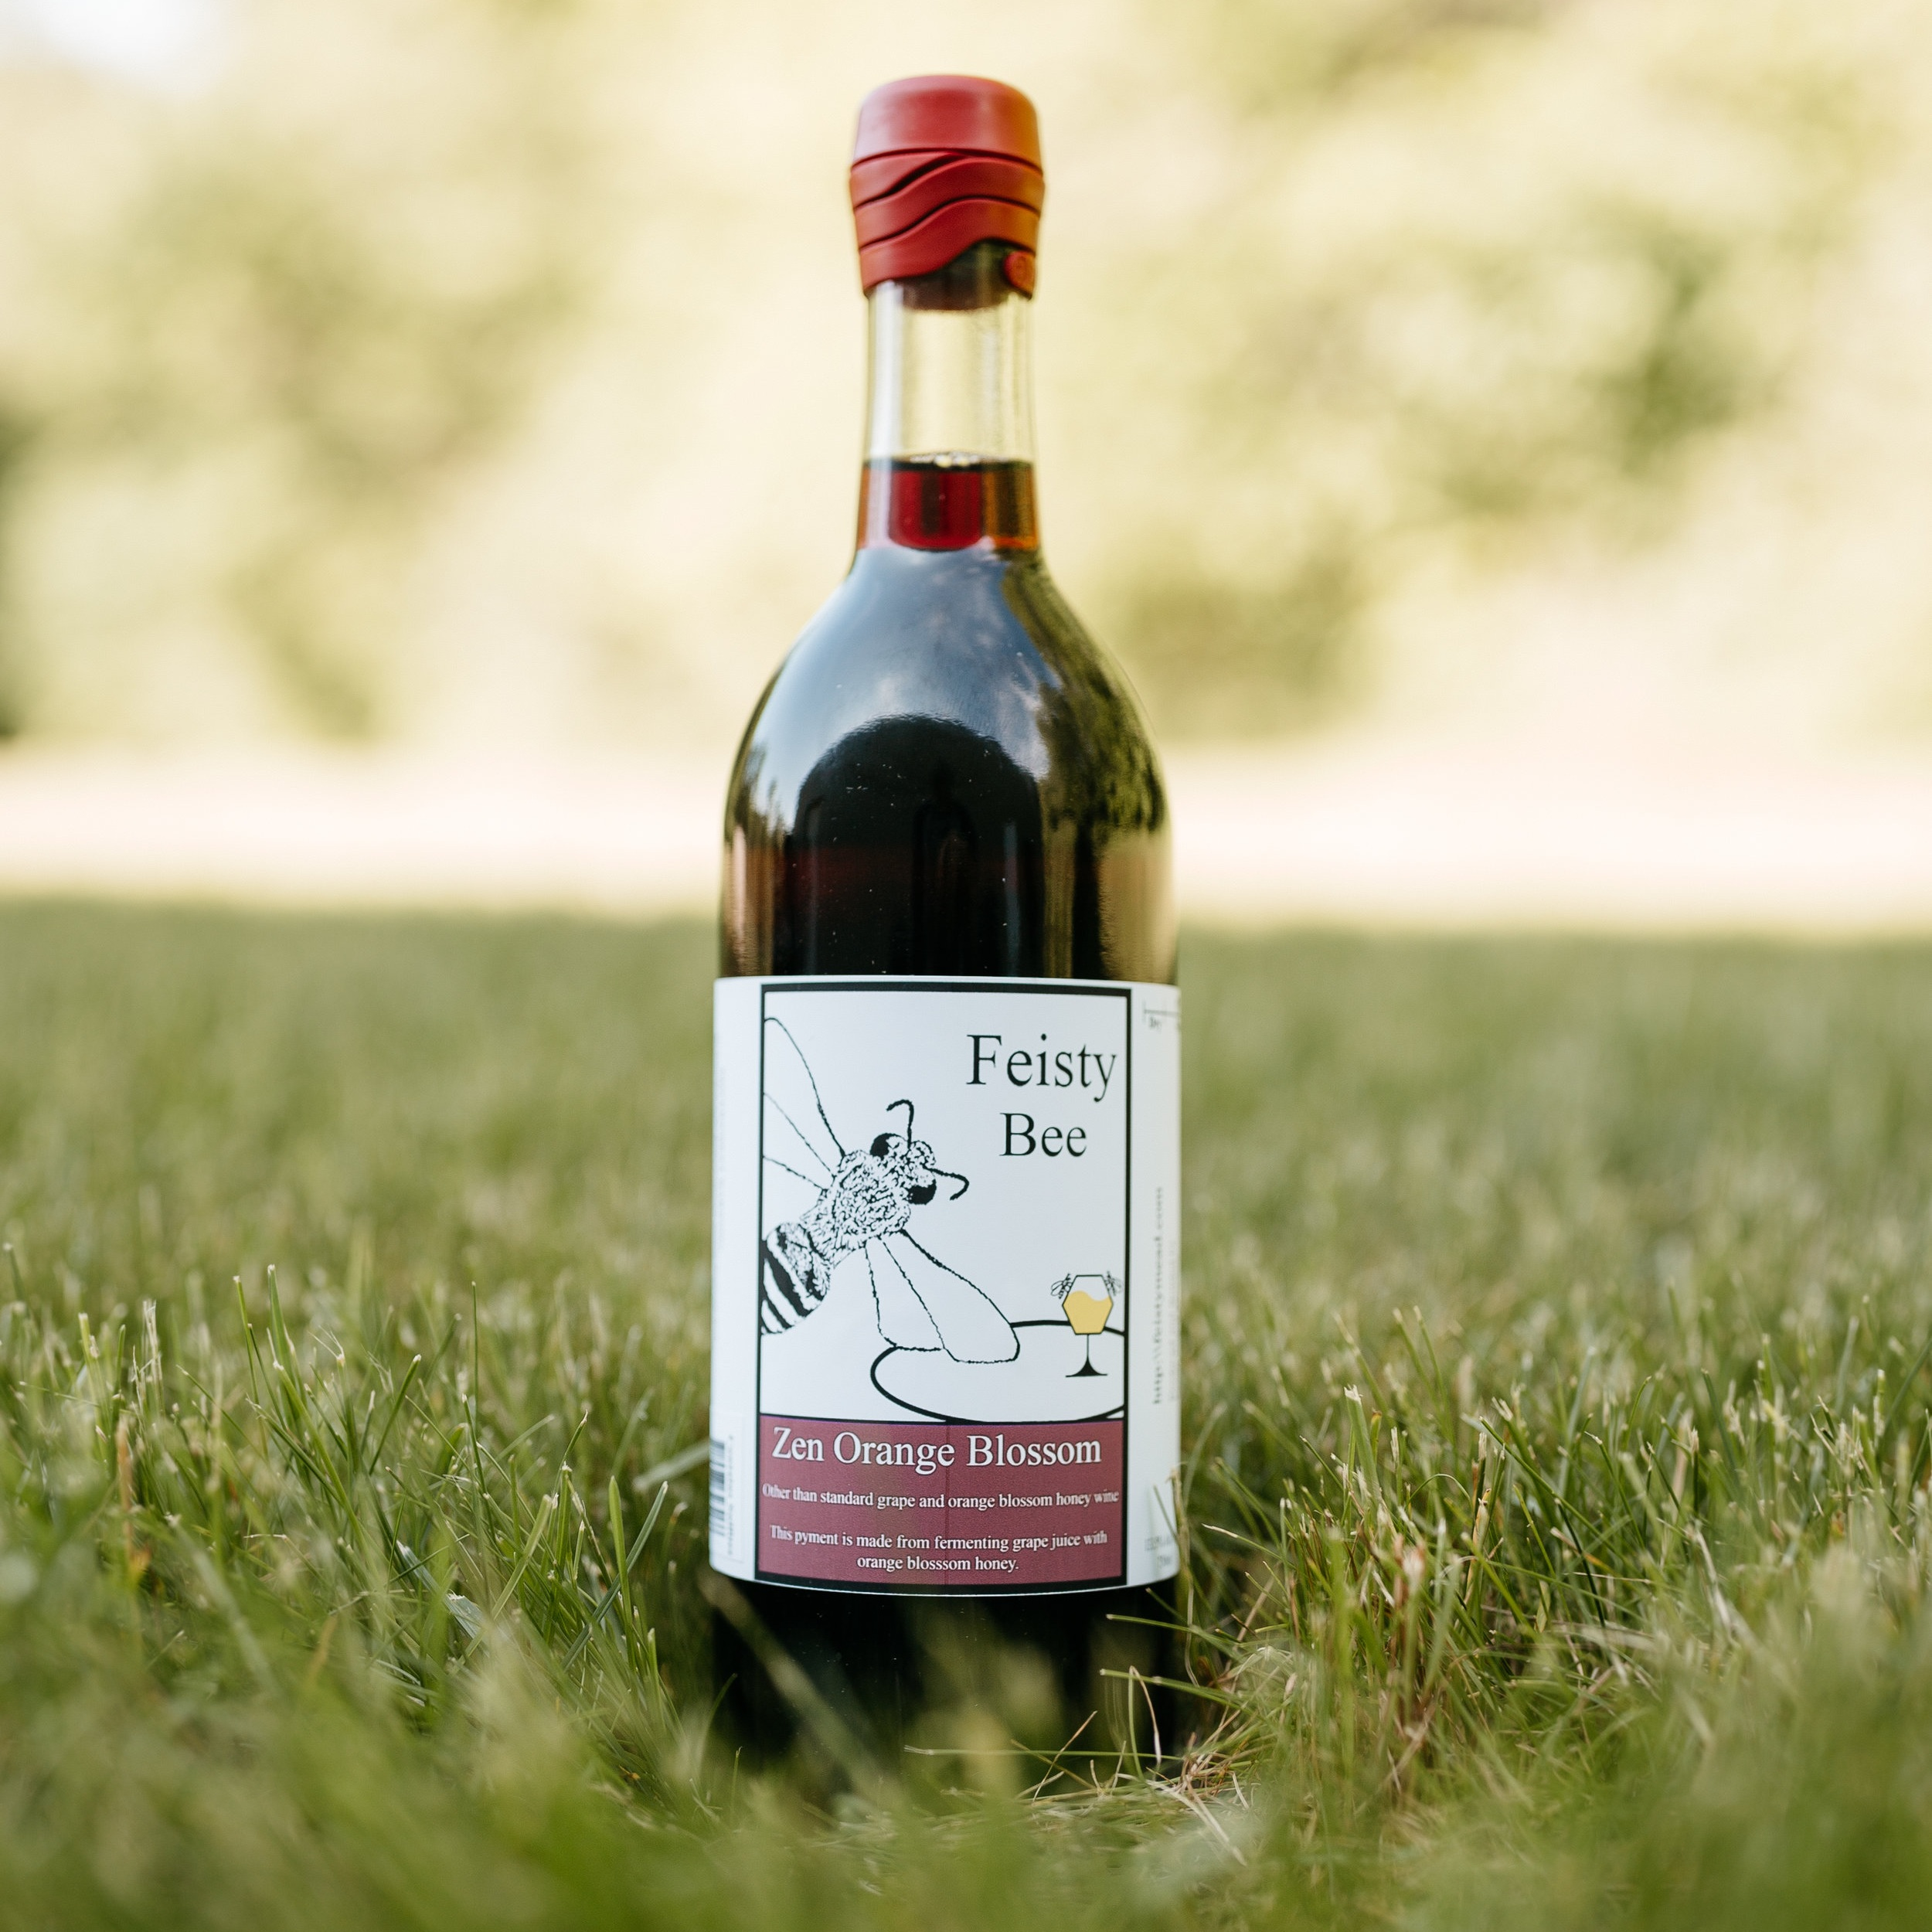 zen orange blossom pyment - The flavor is a terrific blend of orange blossom honey wine with tannins and flavor of a good zin. It has a sweet/tart finish, with lingering zin and orange flavors.